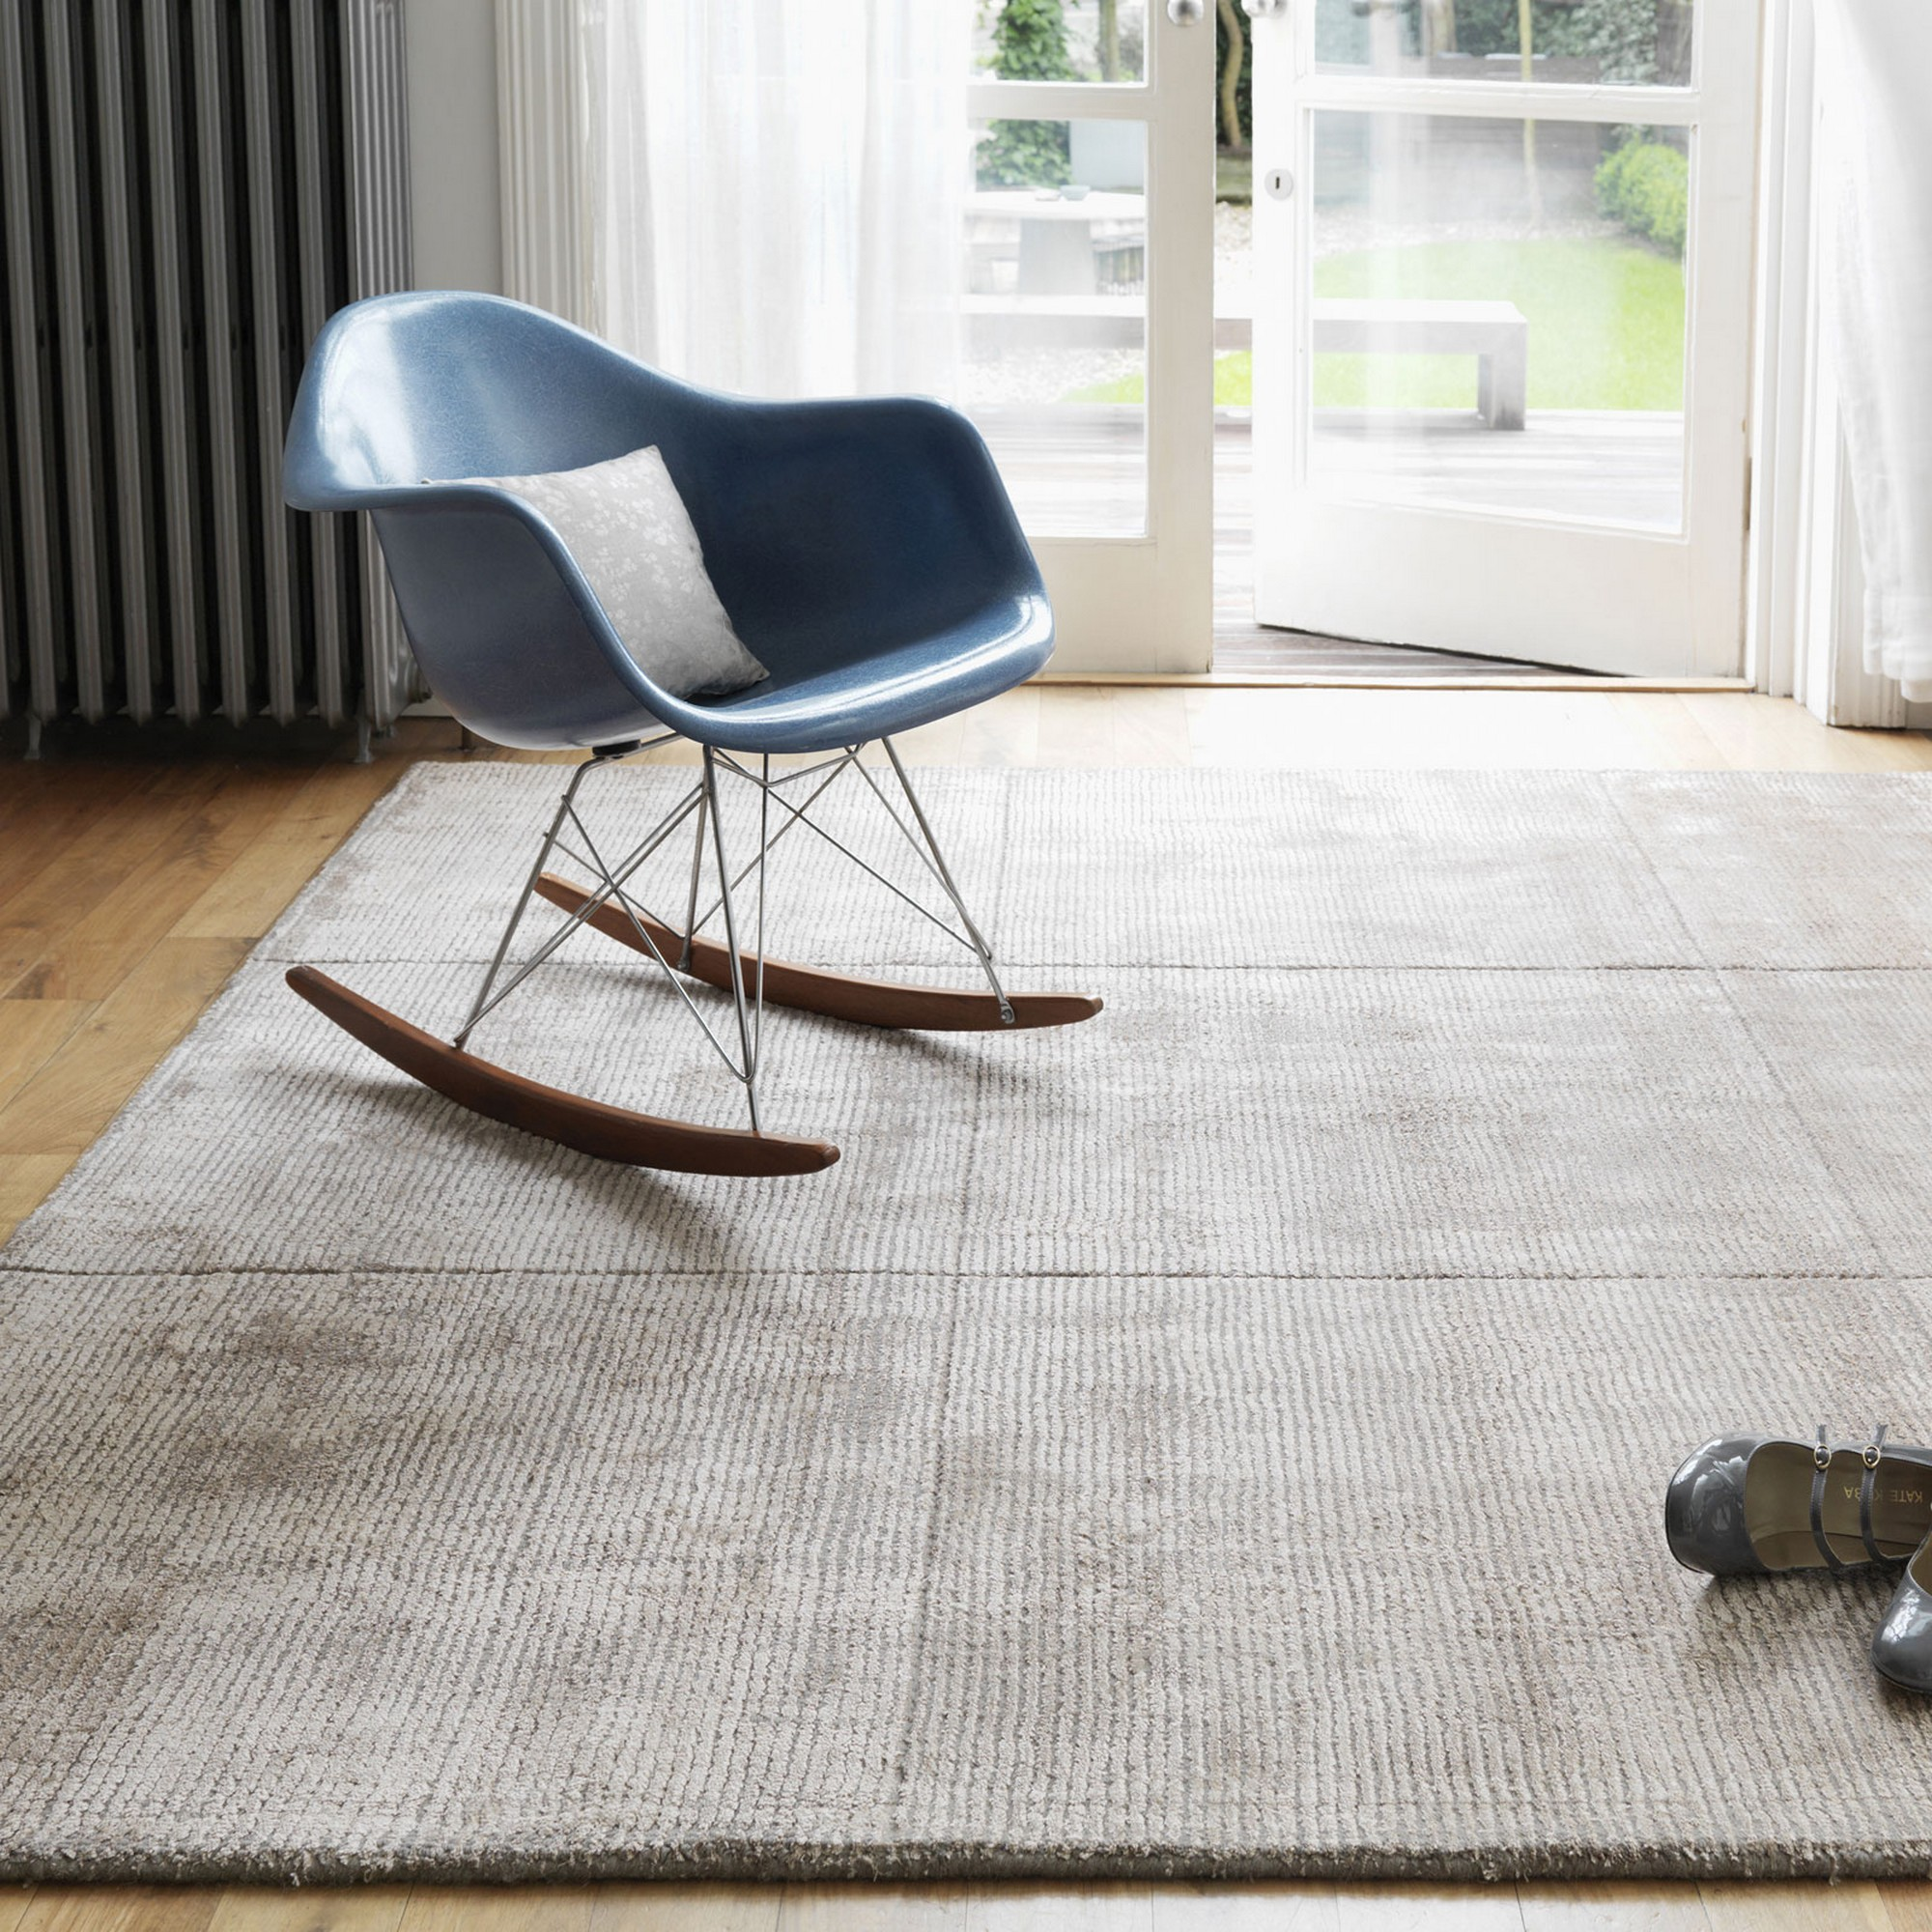 Grosvenor Rugs in Taupe